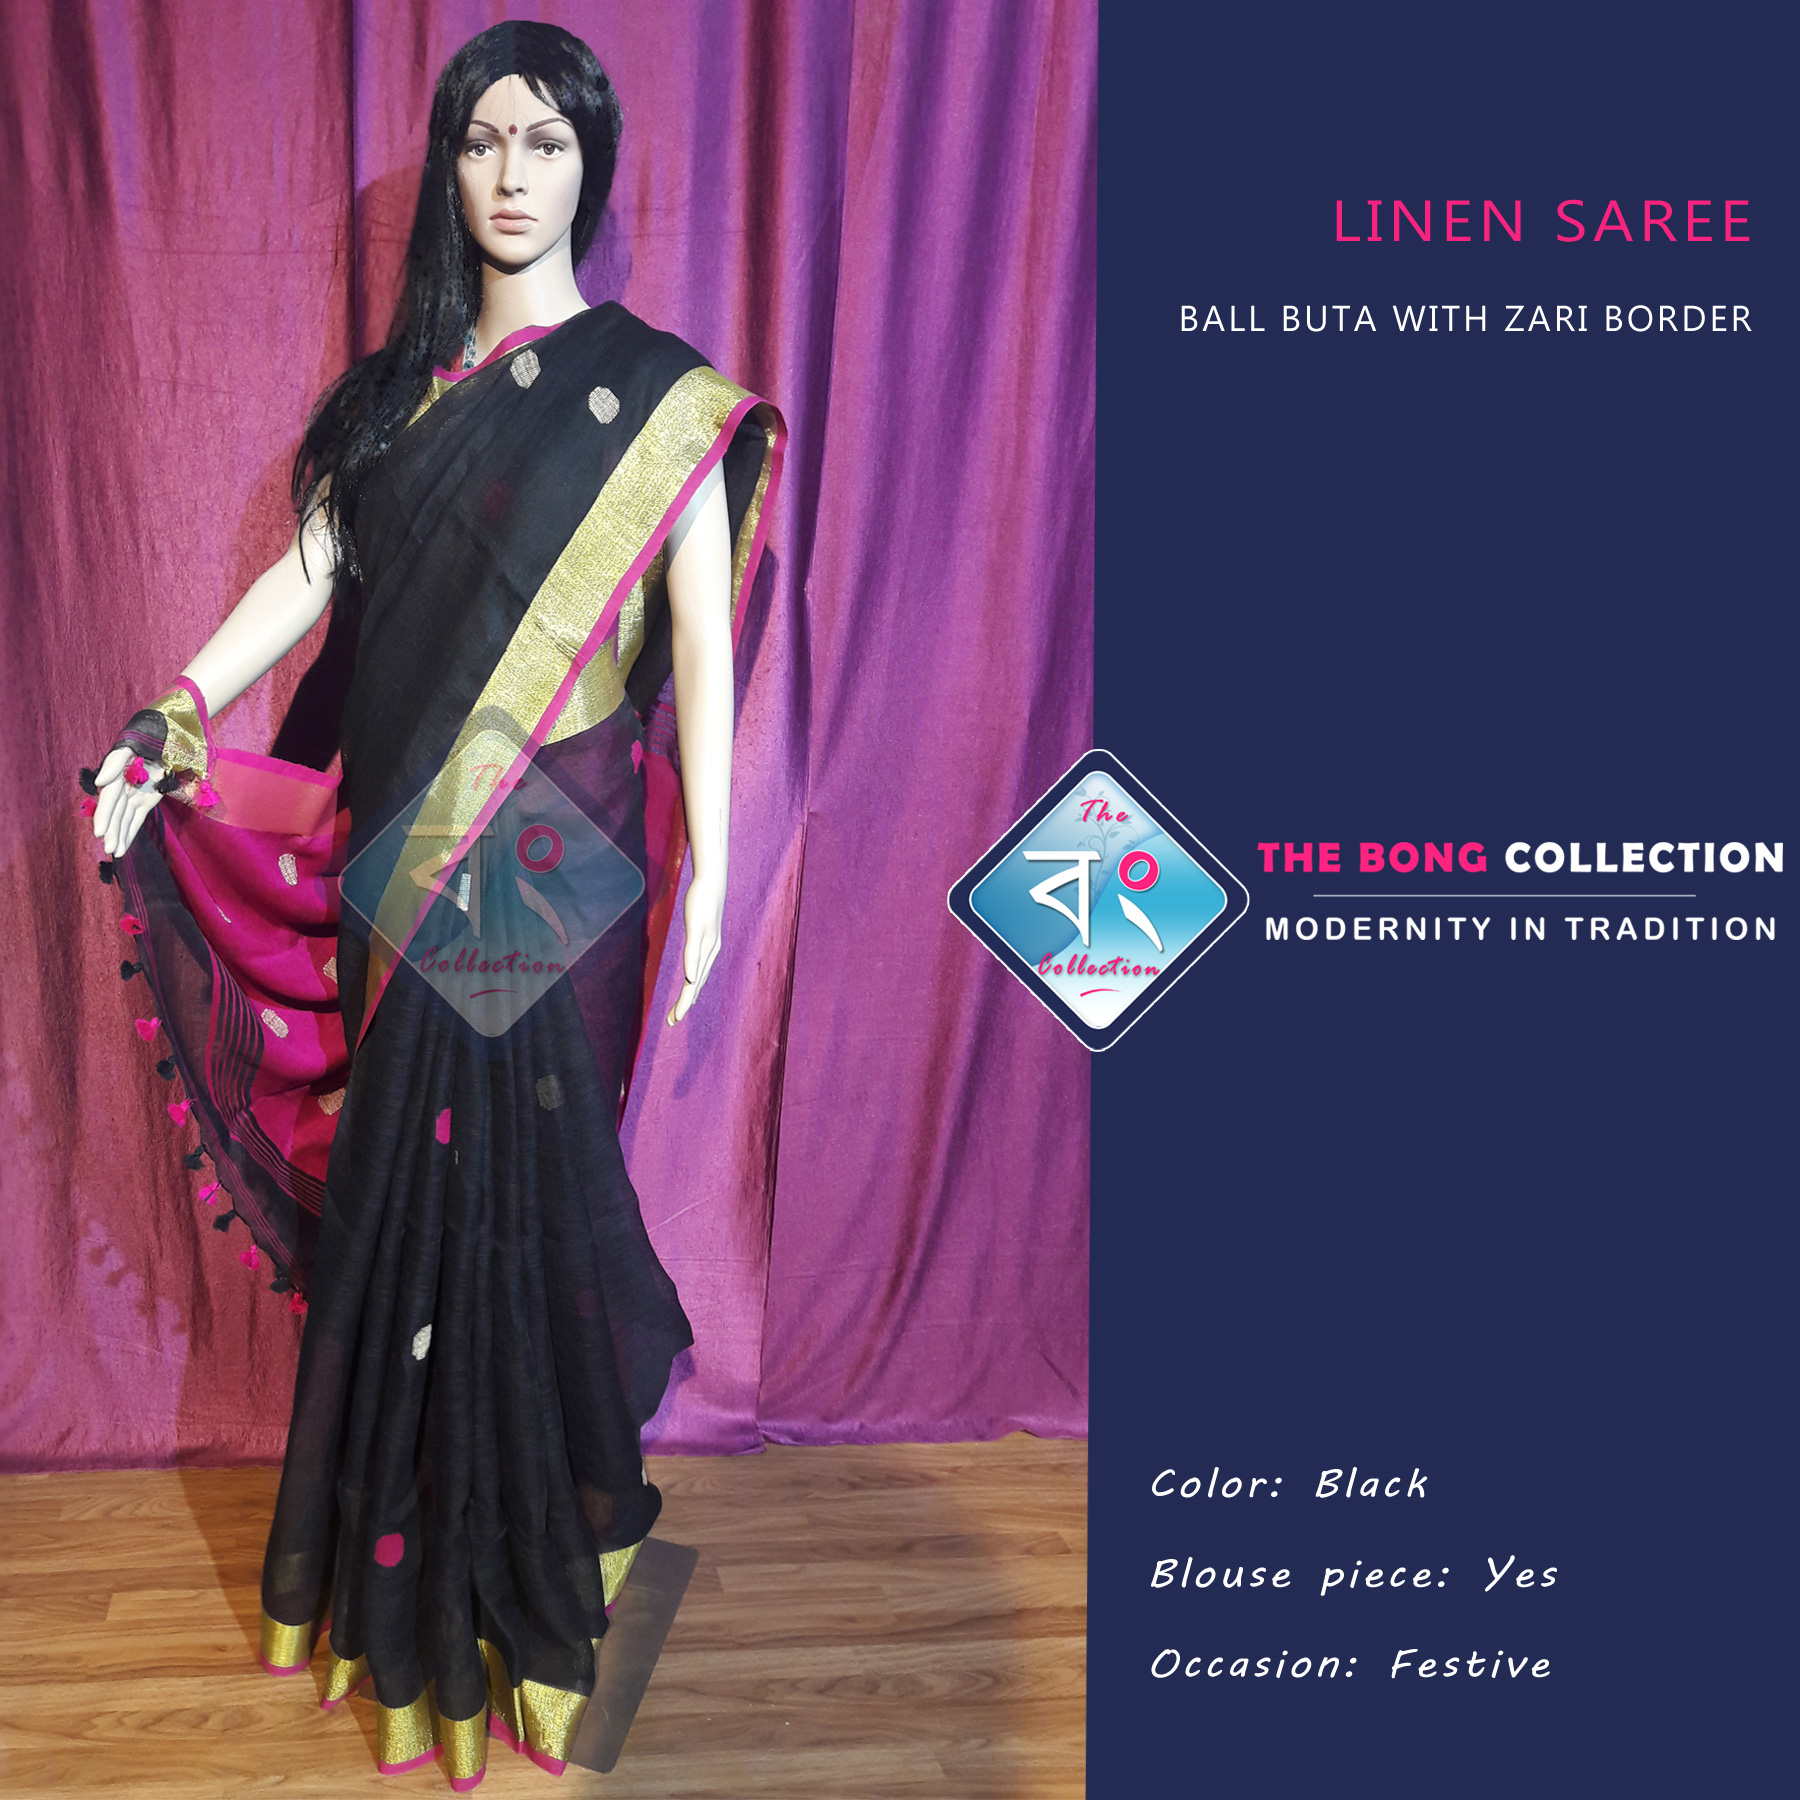 9d5d2c0cf Linen Saree with Ball Buta and Zari Border -Pink and Black - The Bong  Collection